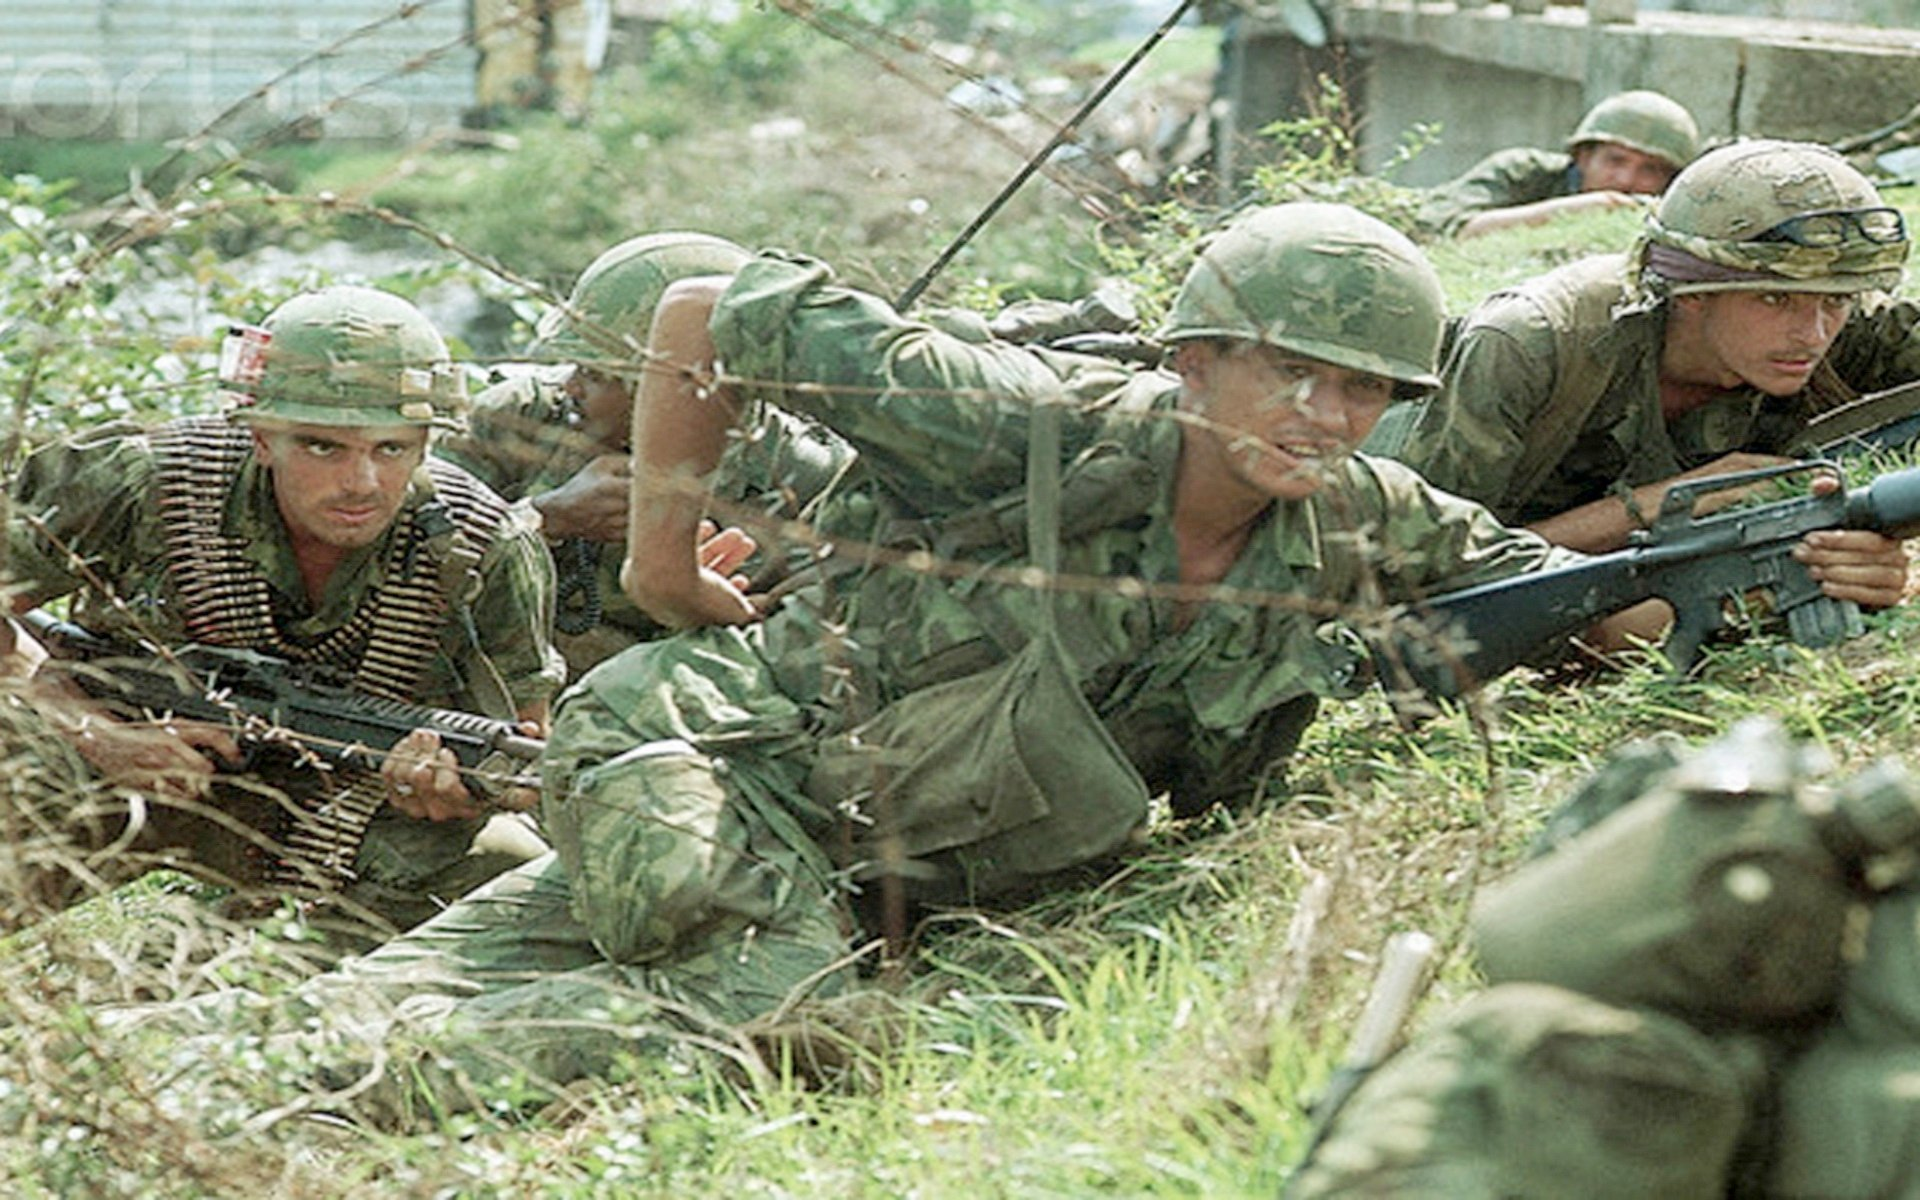 Vietnam War Wallpapers Photos high quality pics photos 1920x1200